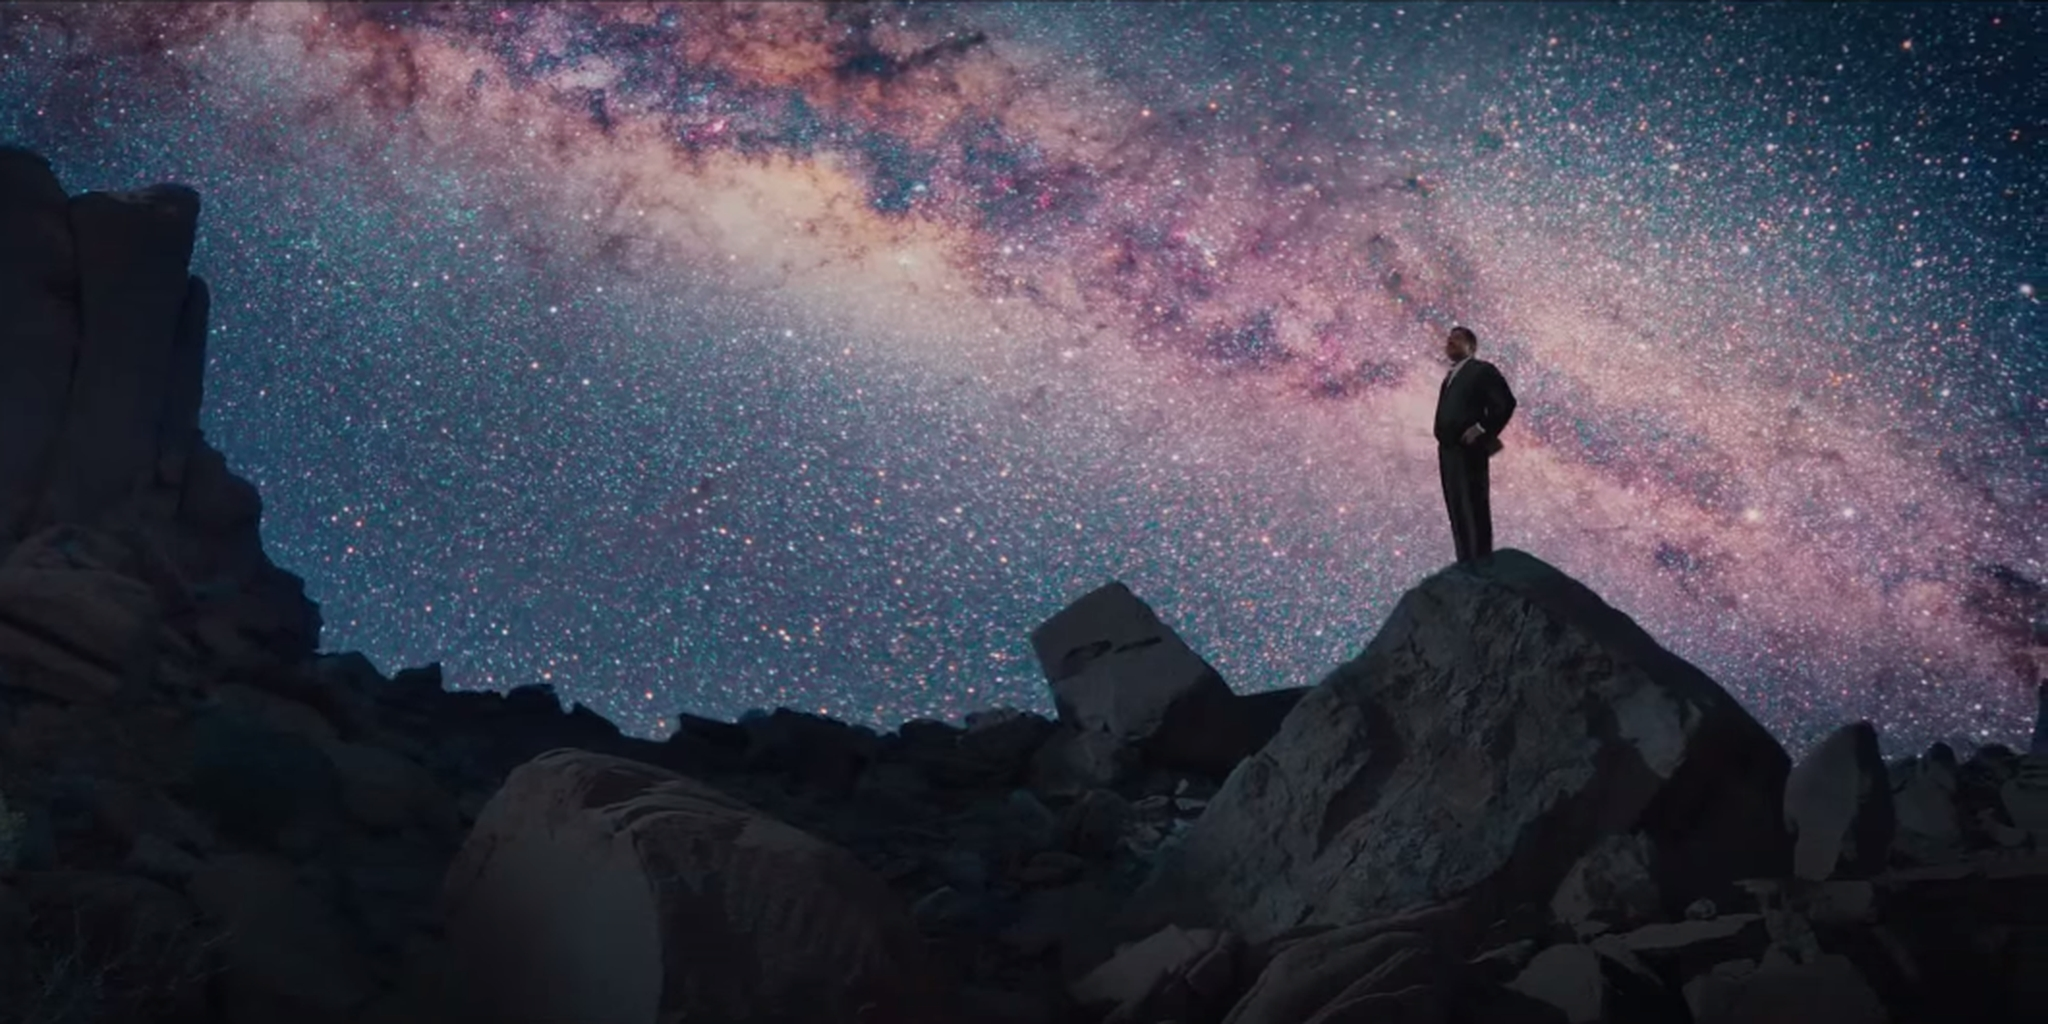 nature documentaries on netflix: cosmos